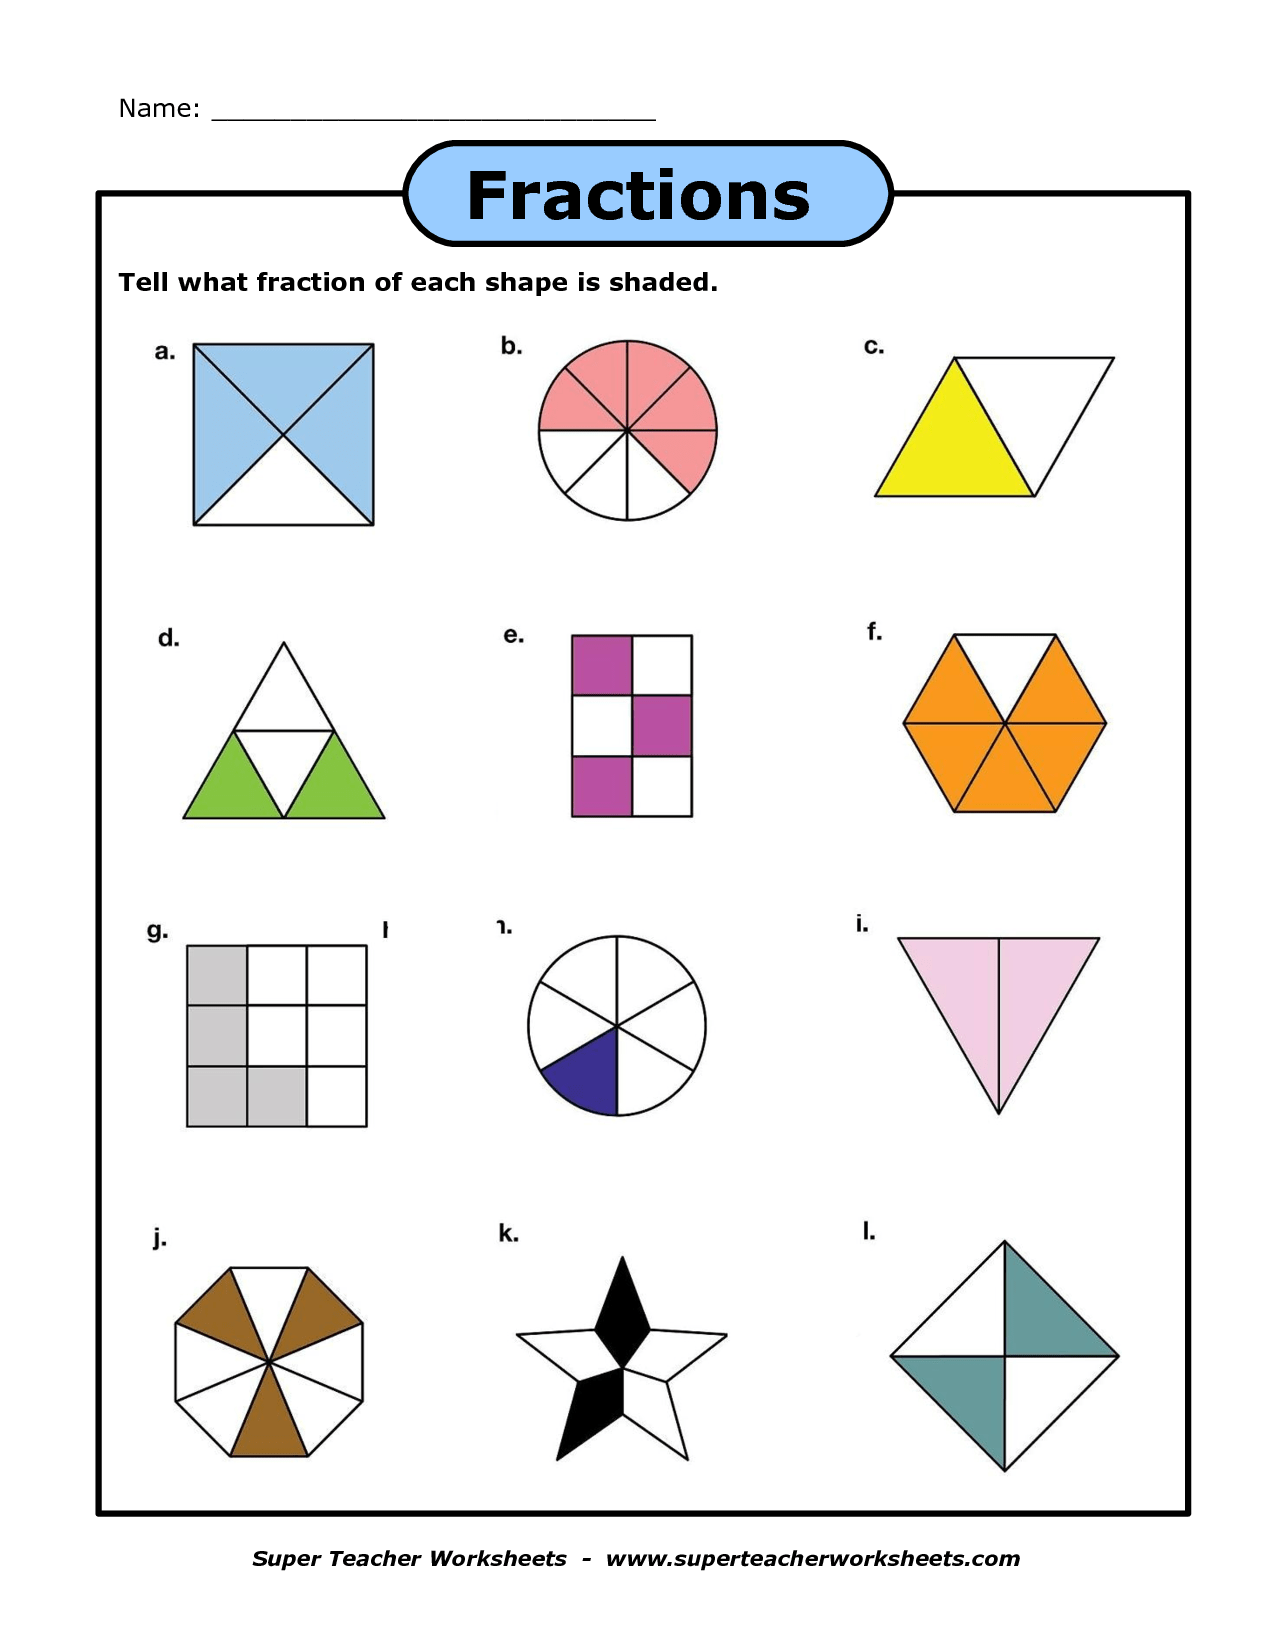 A Fraction Worksheet